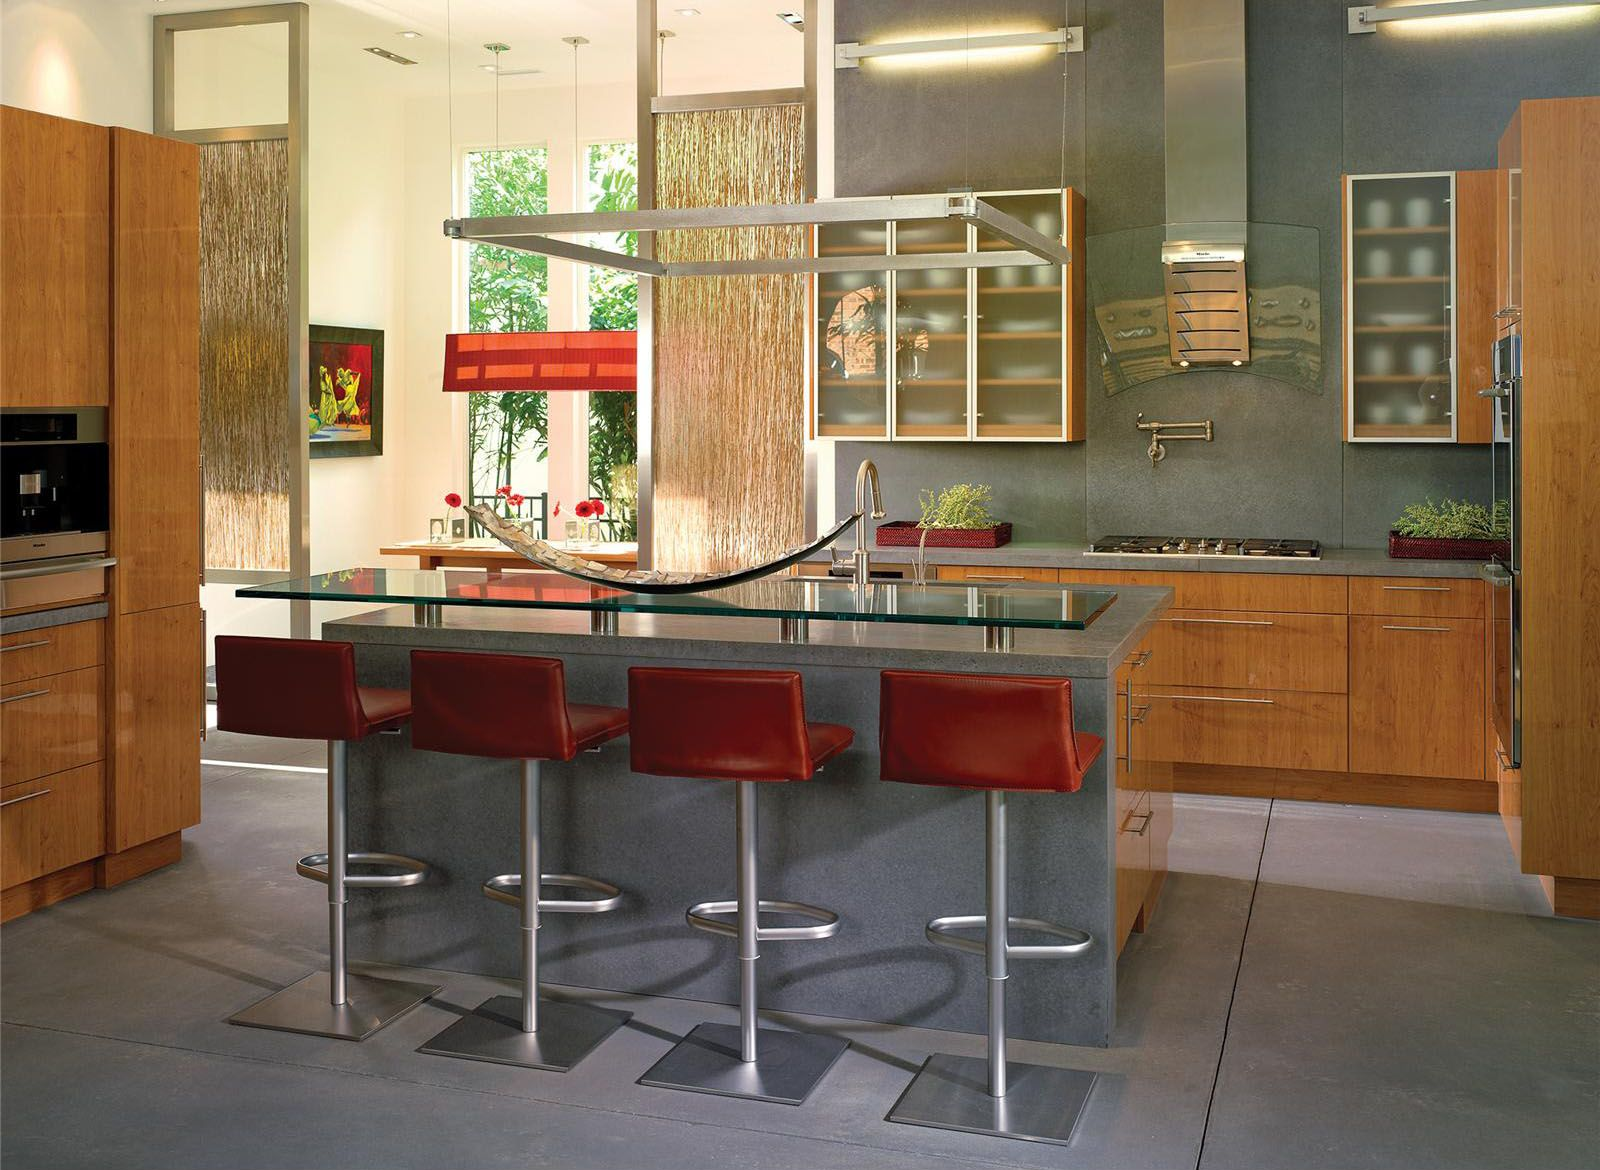 dashing kitchen island with stools for comfortable seating - http